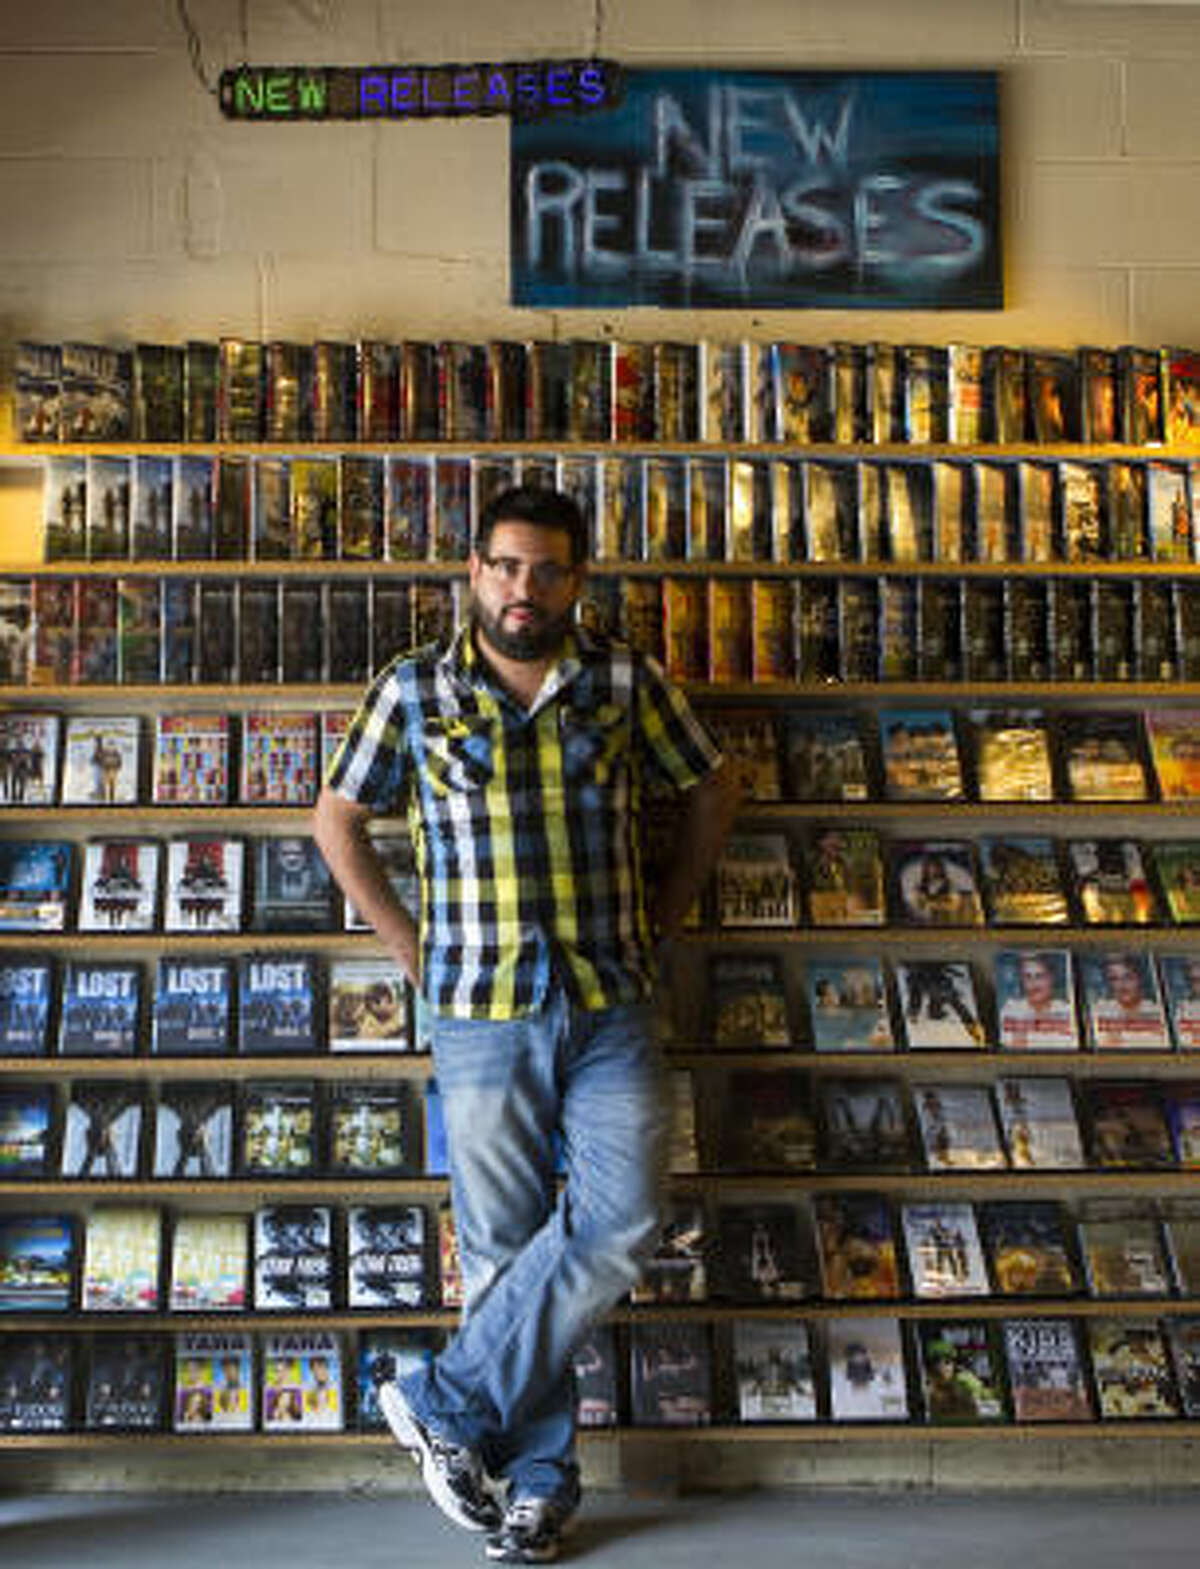 Rob Arcos' Movies! The Store on Richmond goes on even as bigger chains nearby close.